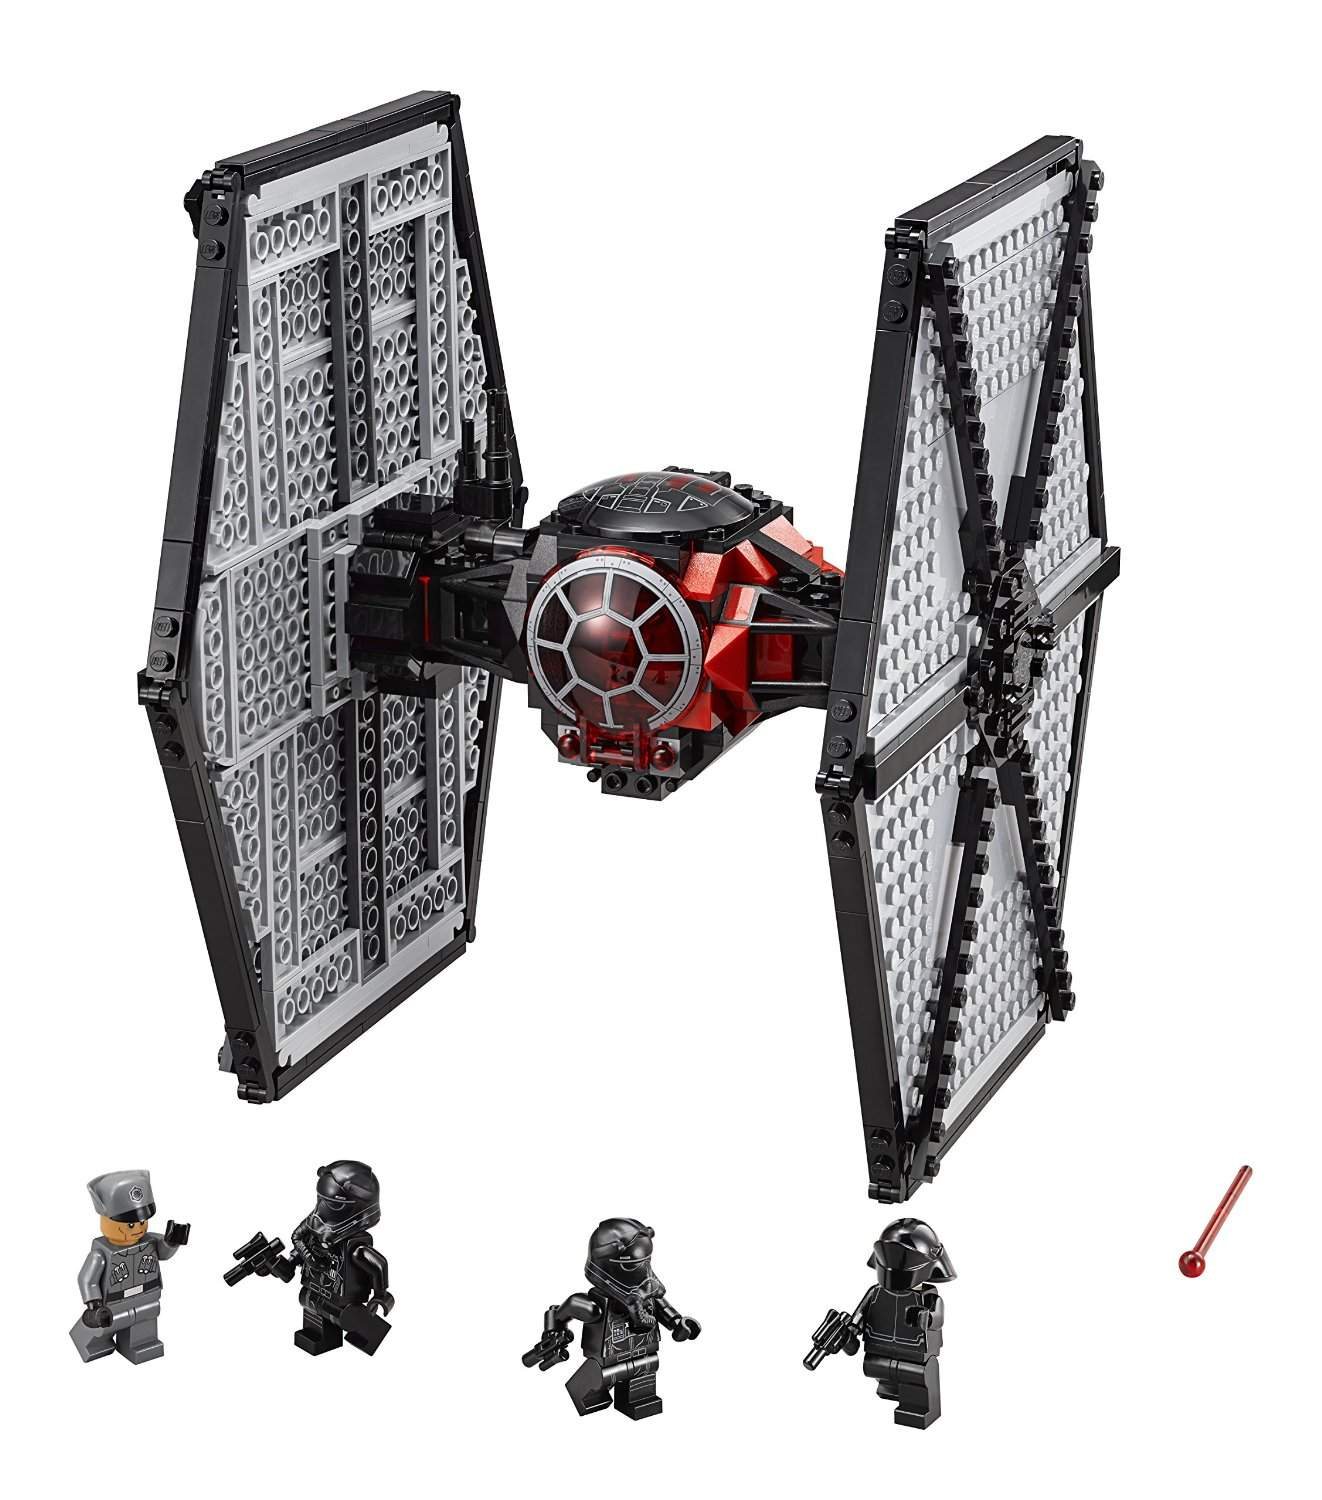 LEGO Star Wars 75101 First Order Special Forces Tie Fighter in Action